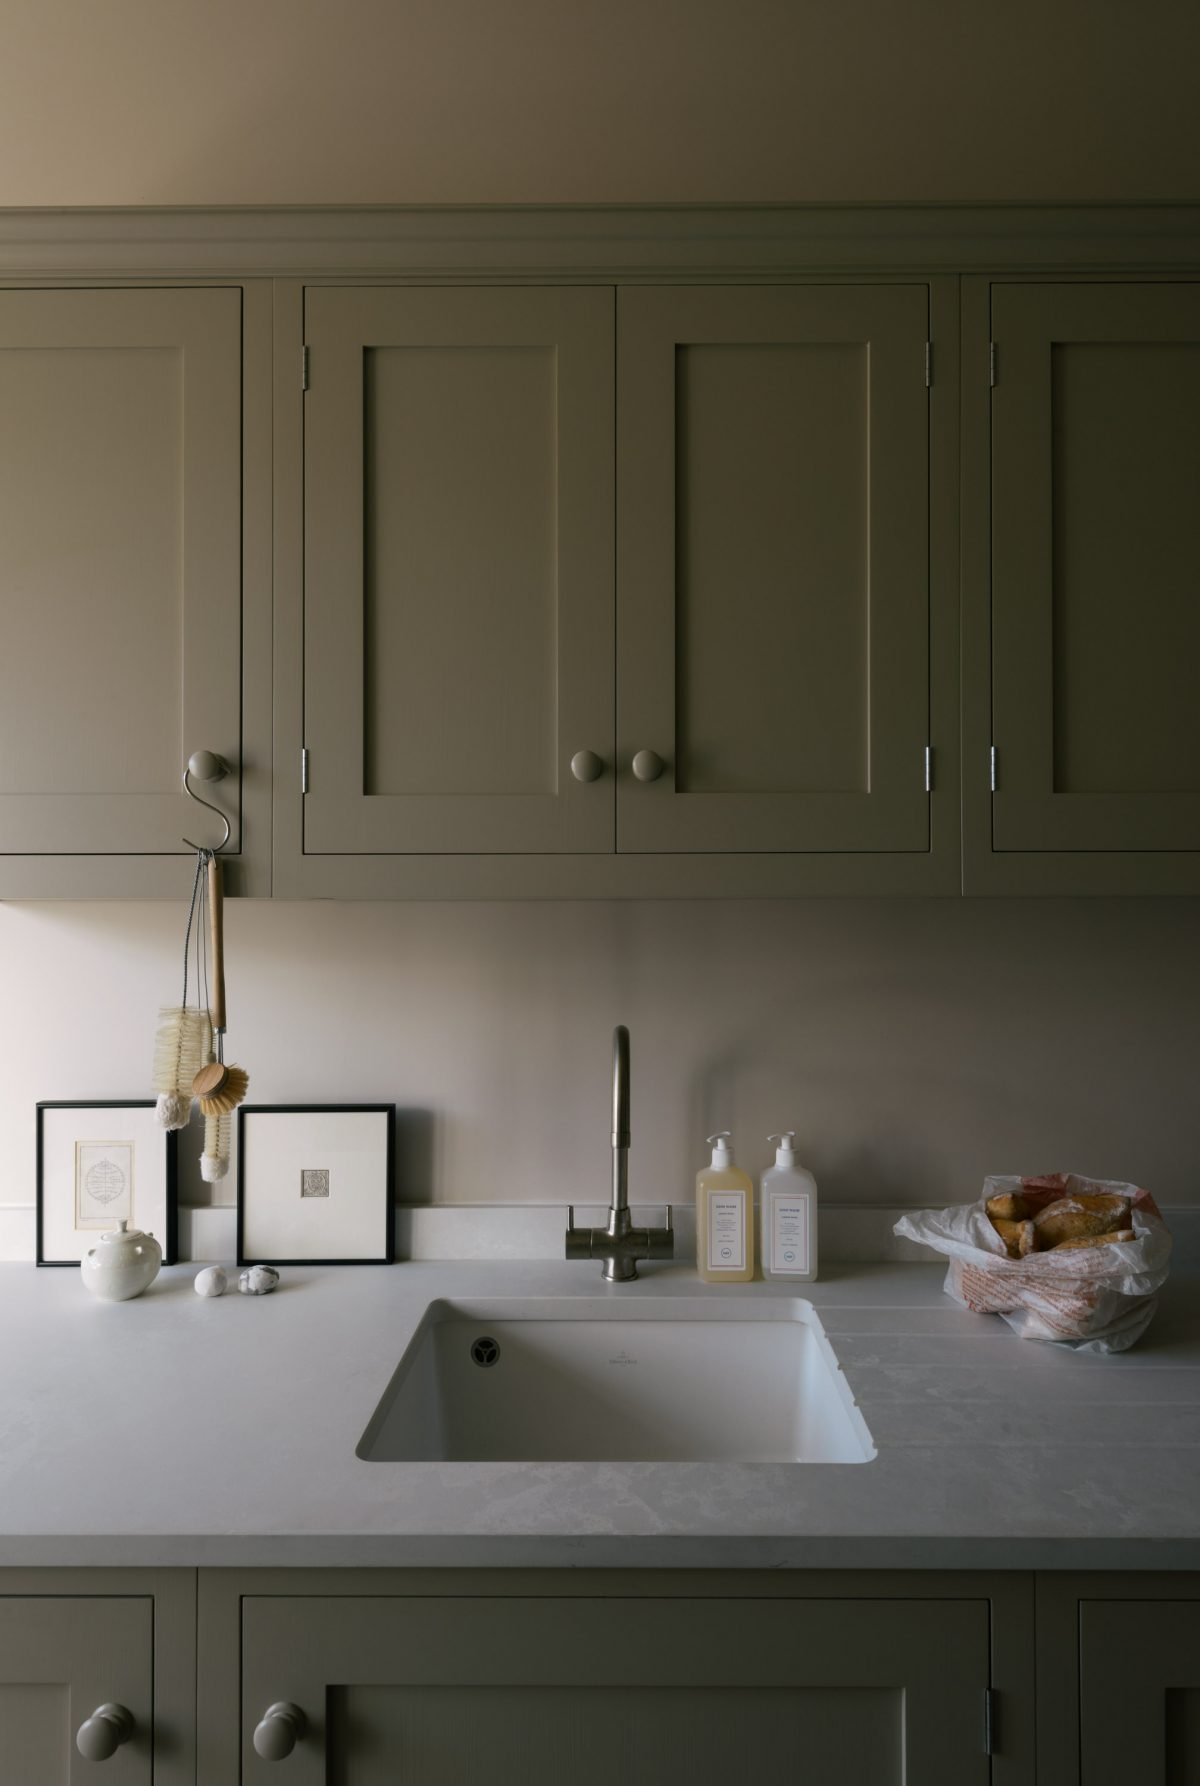 The Bath Kitchen features a manmade surface by Caesarstone, it looks pale, sleek and will take a great deal of use.